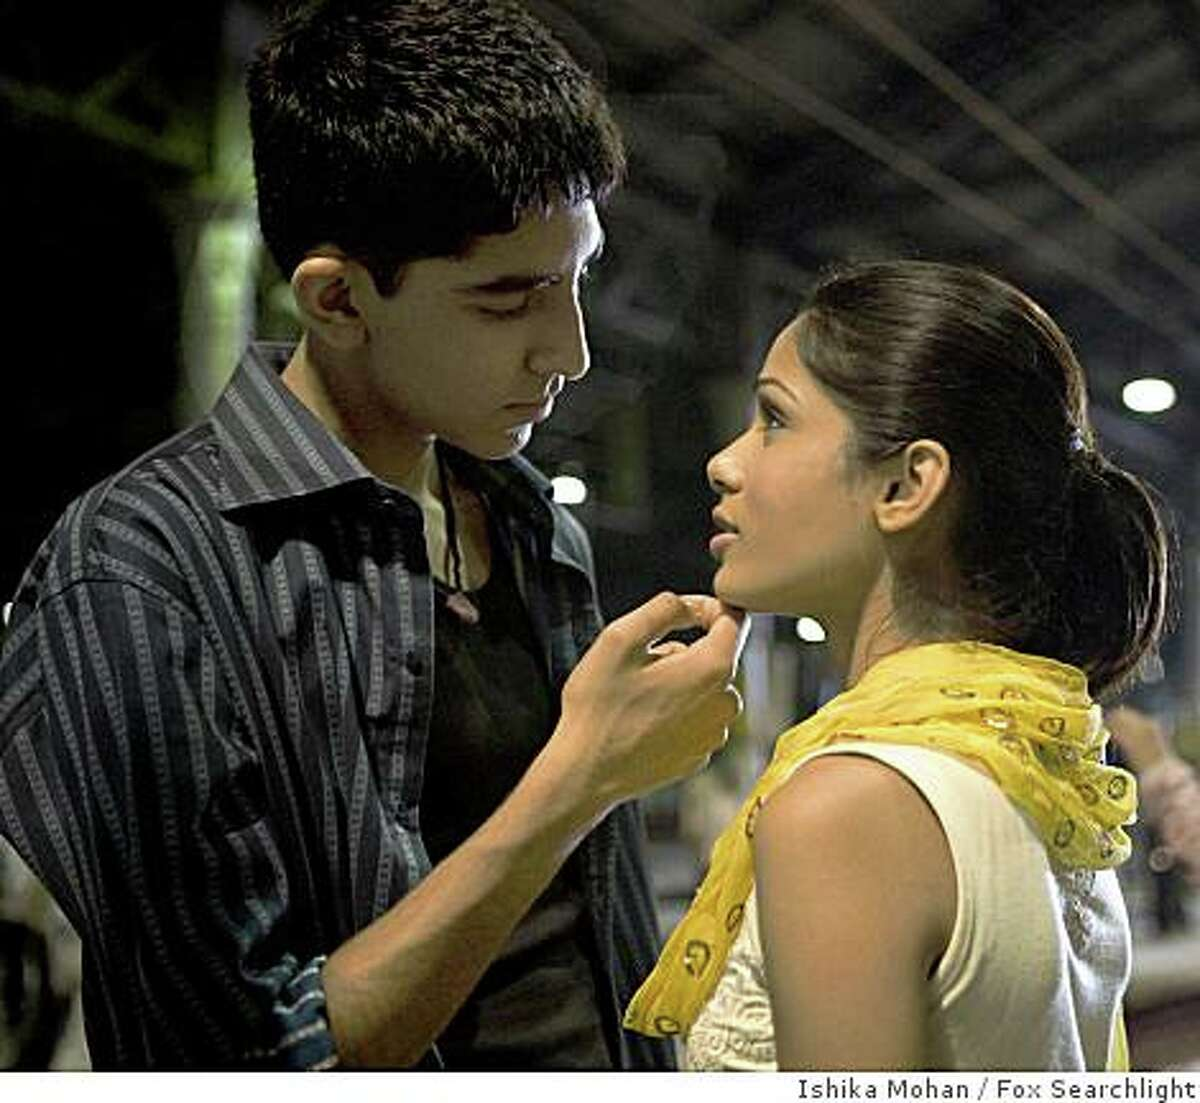 Slumdog Millionaire (2008) Just a decade or so later, the movie has not dated well in memory. It's like a one-off anomaly that captured people's imaginations for a month, then lost them forever.